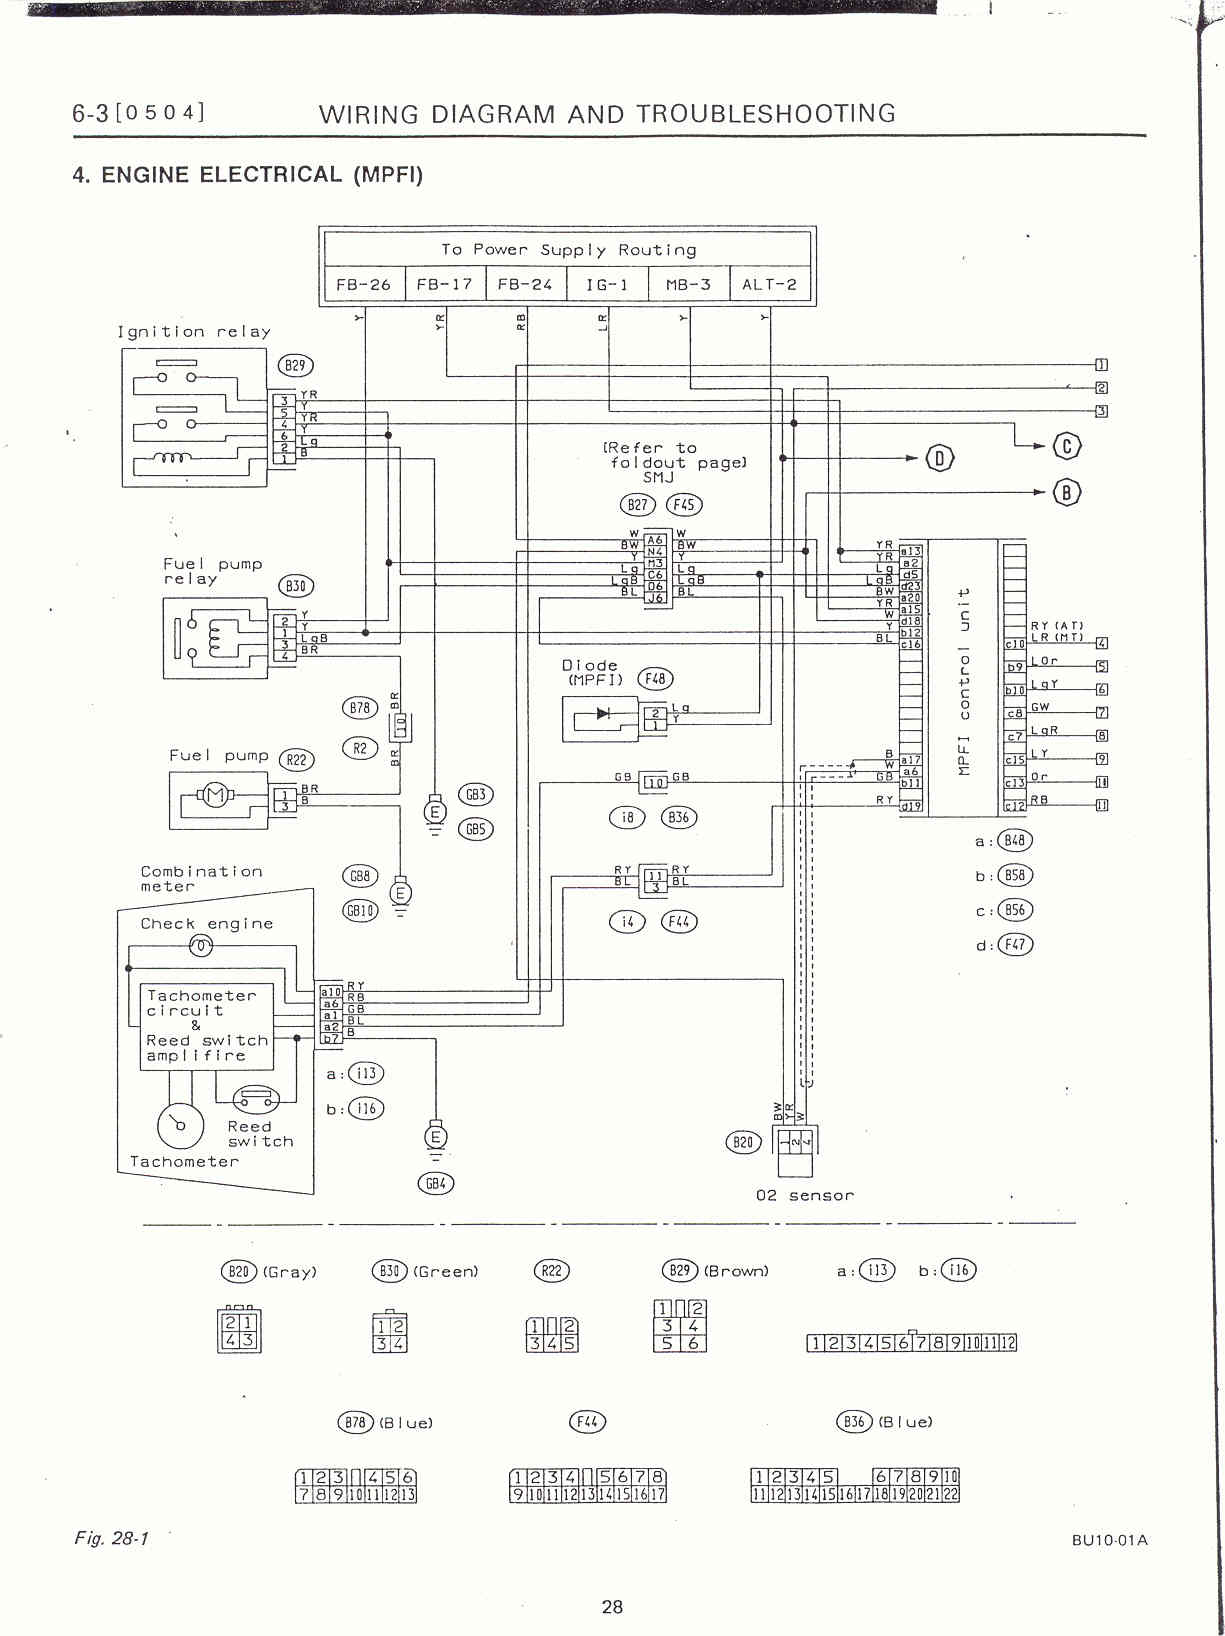 1997 subaru impreza ignition diagram wiring diagram automotive1997 subaru wiring diagram 14 frv capecoral bootsvermietung de \\u20221997 subaru forester exhaust diagram wiring